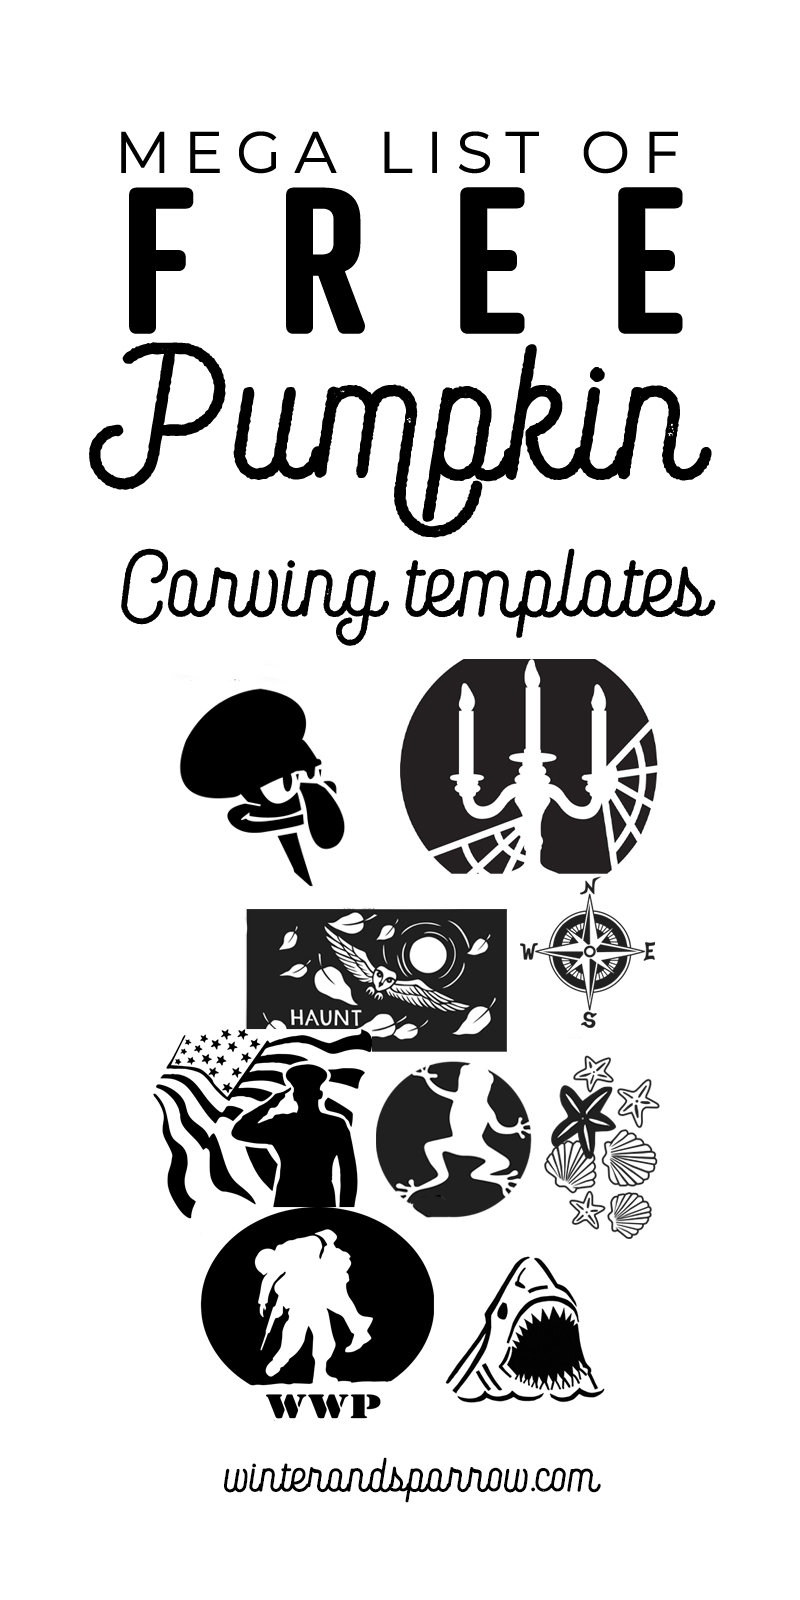 It's just a picture of Mesmerizing Pumpkin Templates Free Printables